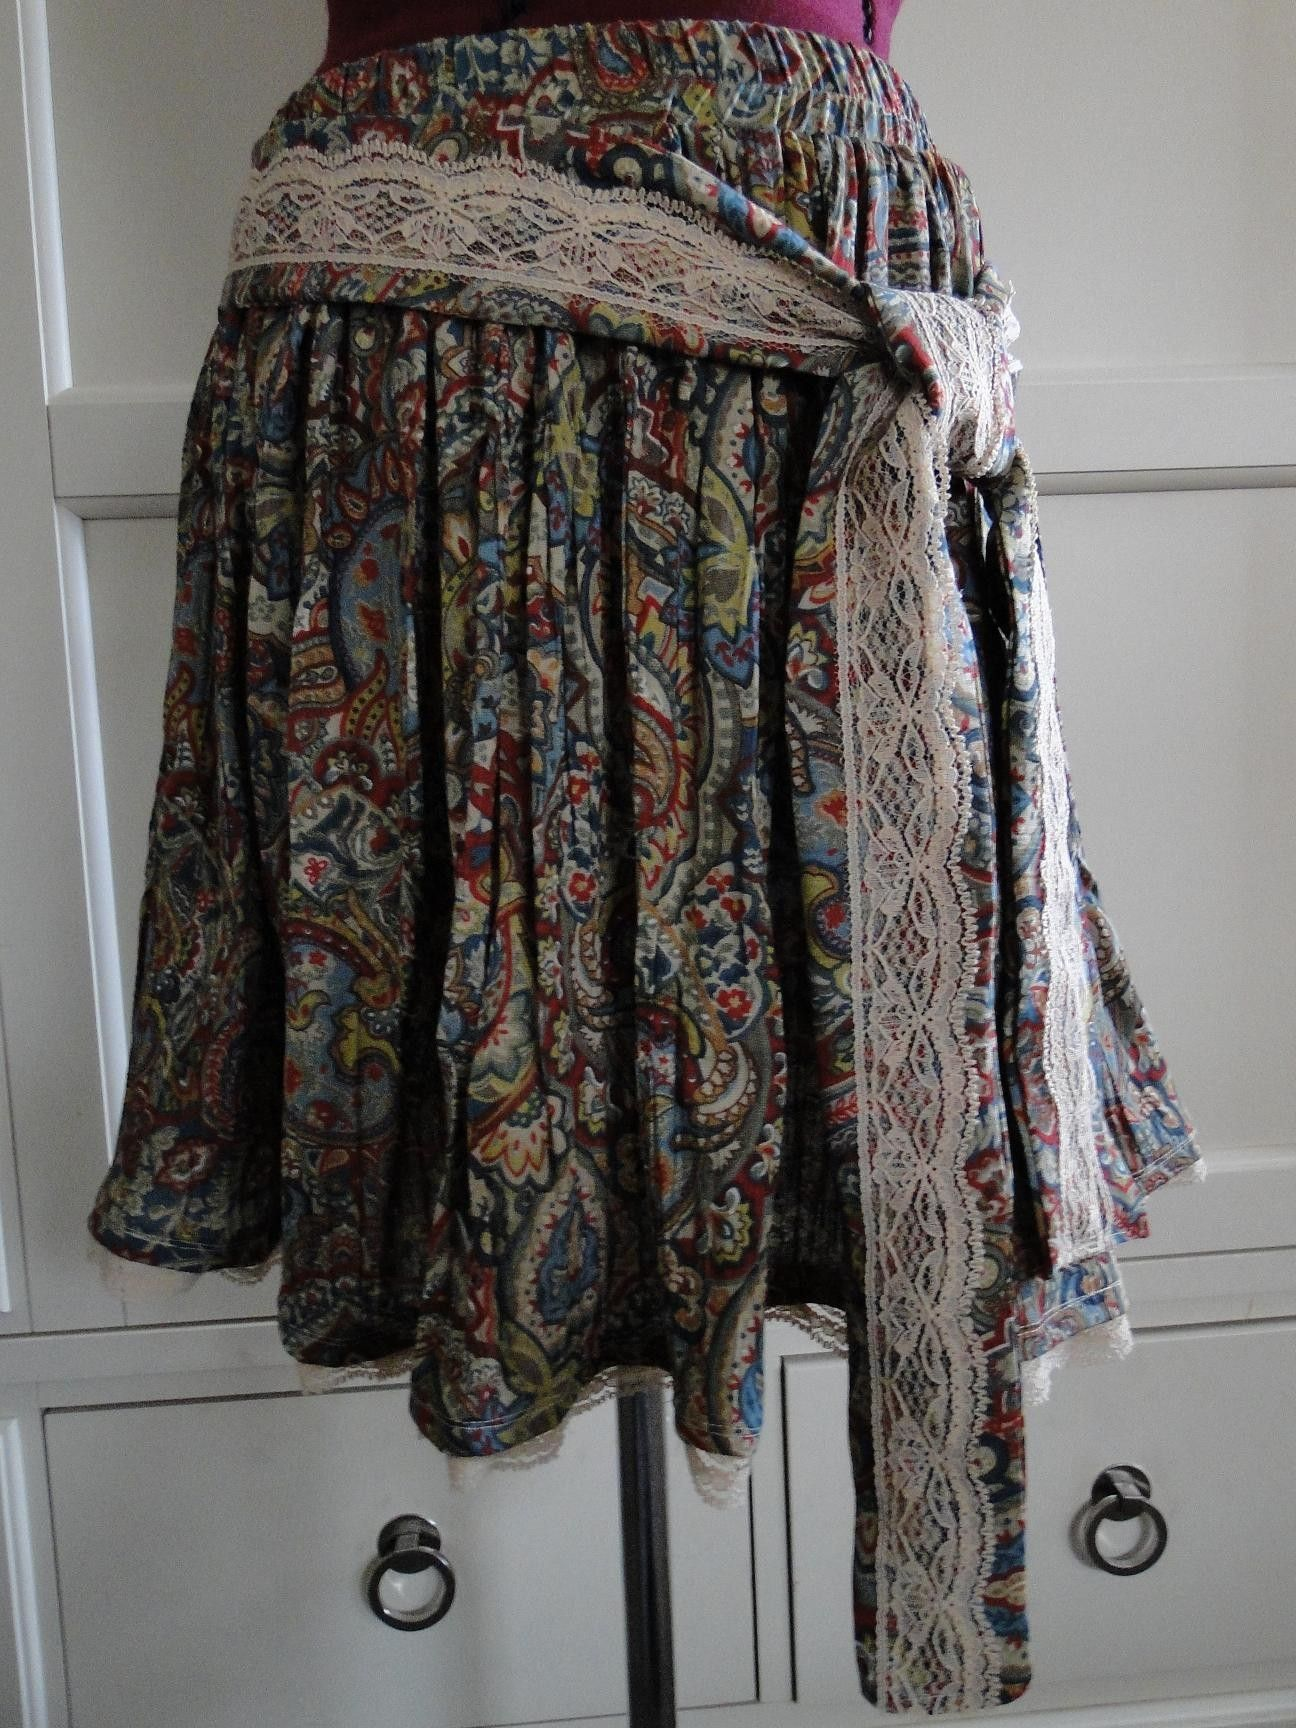 Victorian  Bohemian Paisley Upcycled Short Skirt With Vintage Lace. $45.00, via Etsy.